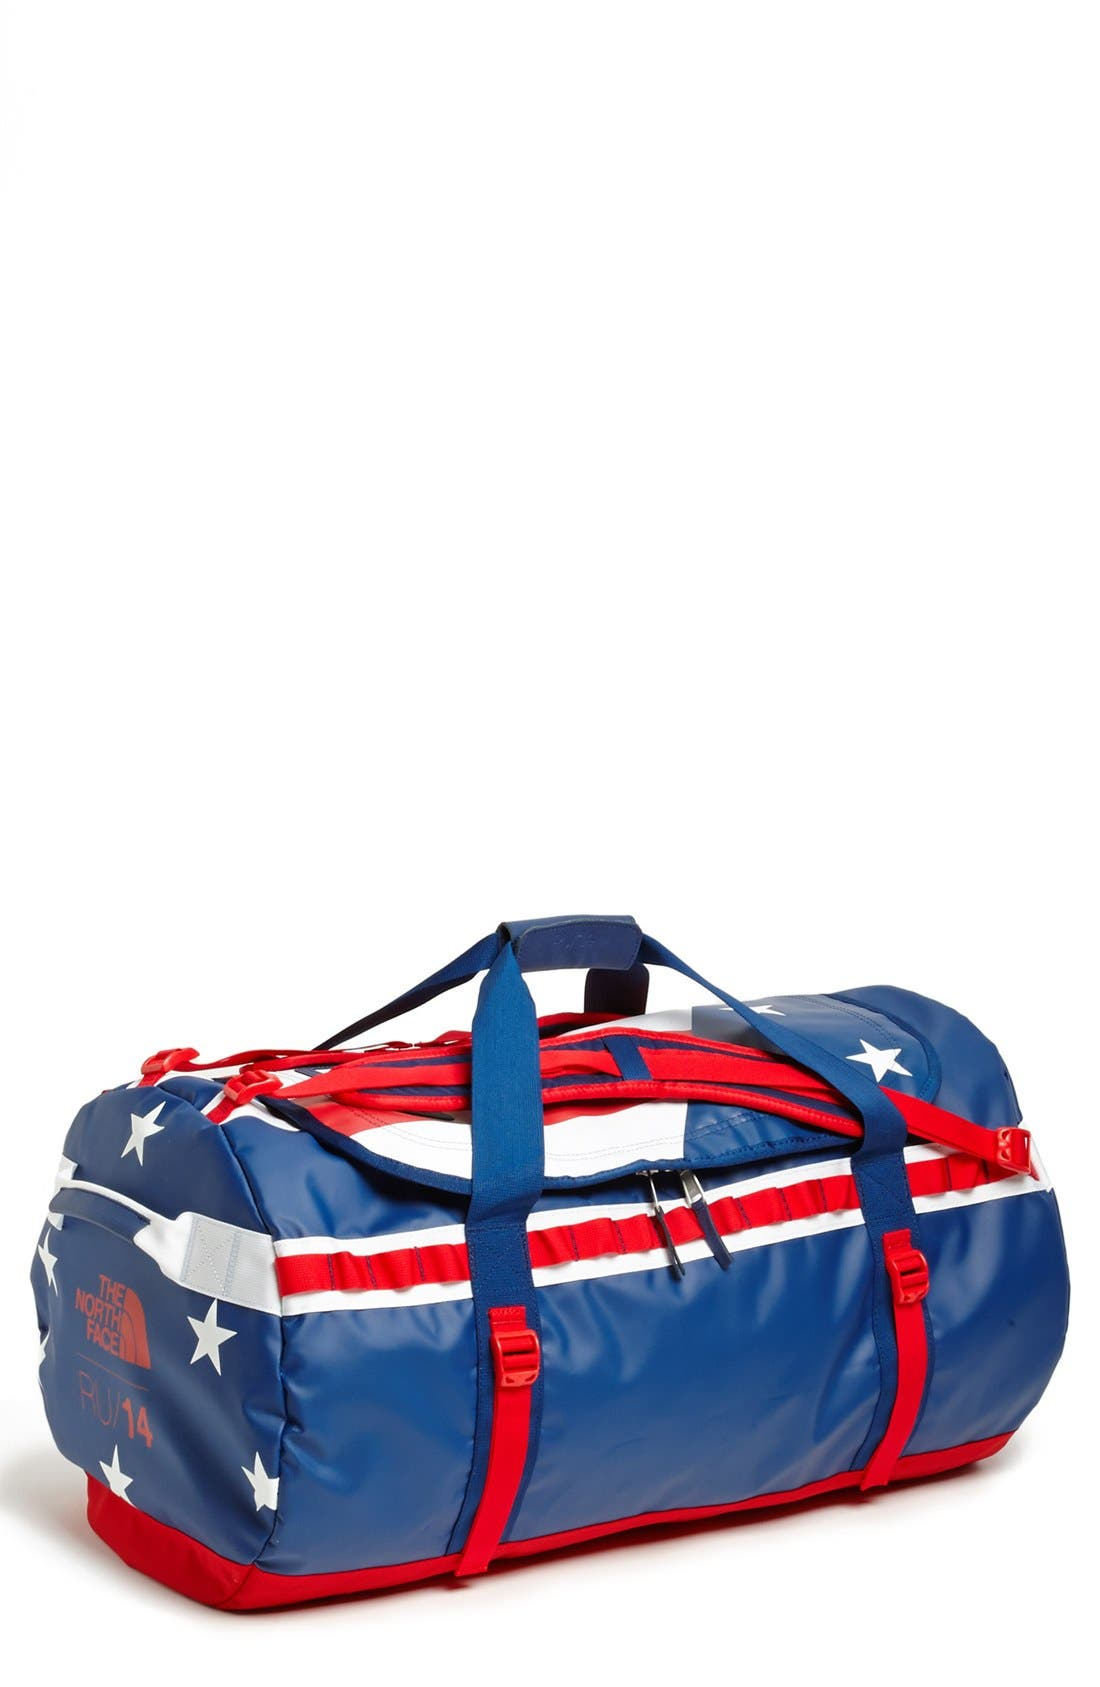 Main Image - The North Face 'Base Camp - International Collection' Duffel Bag